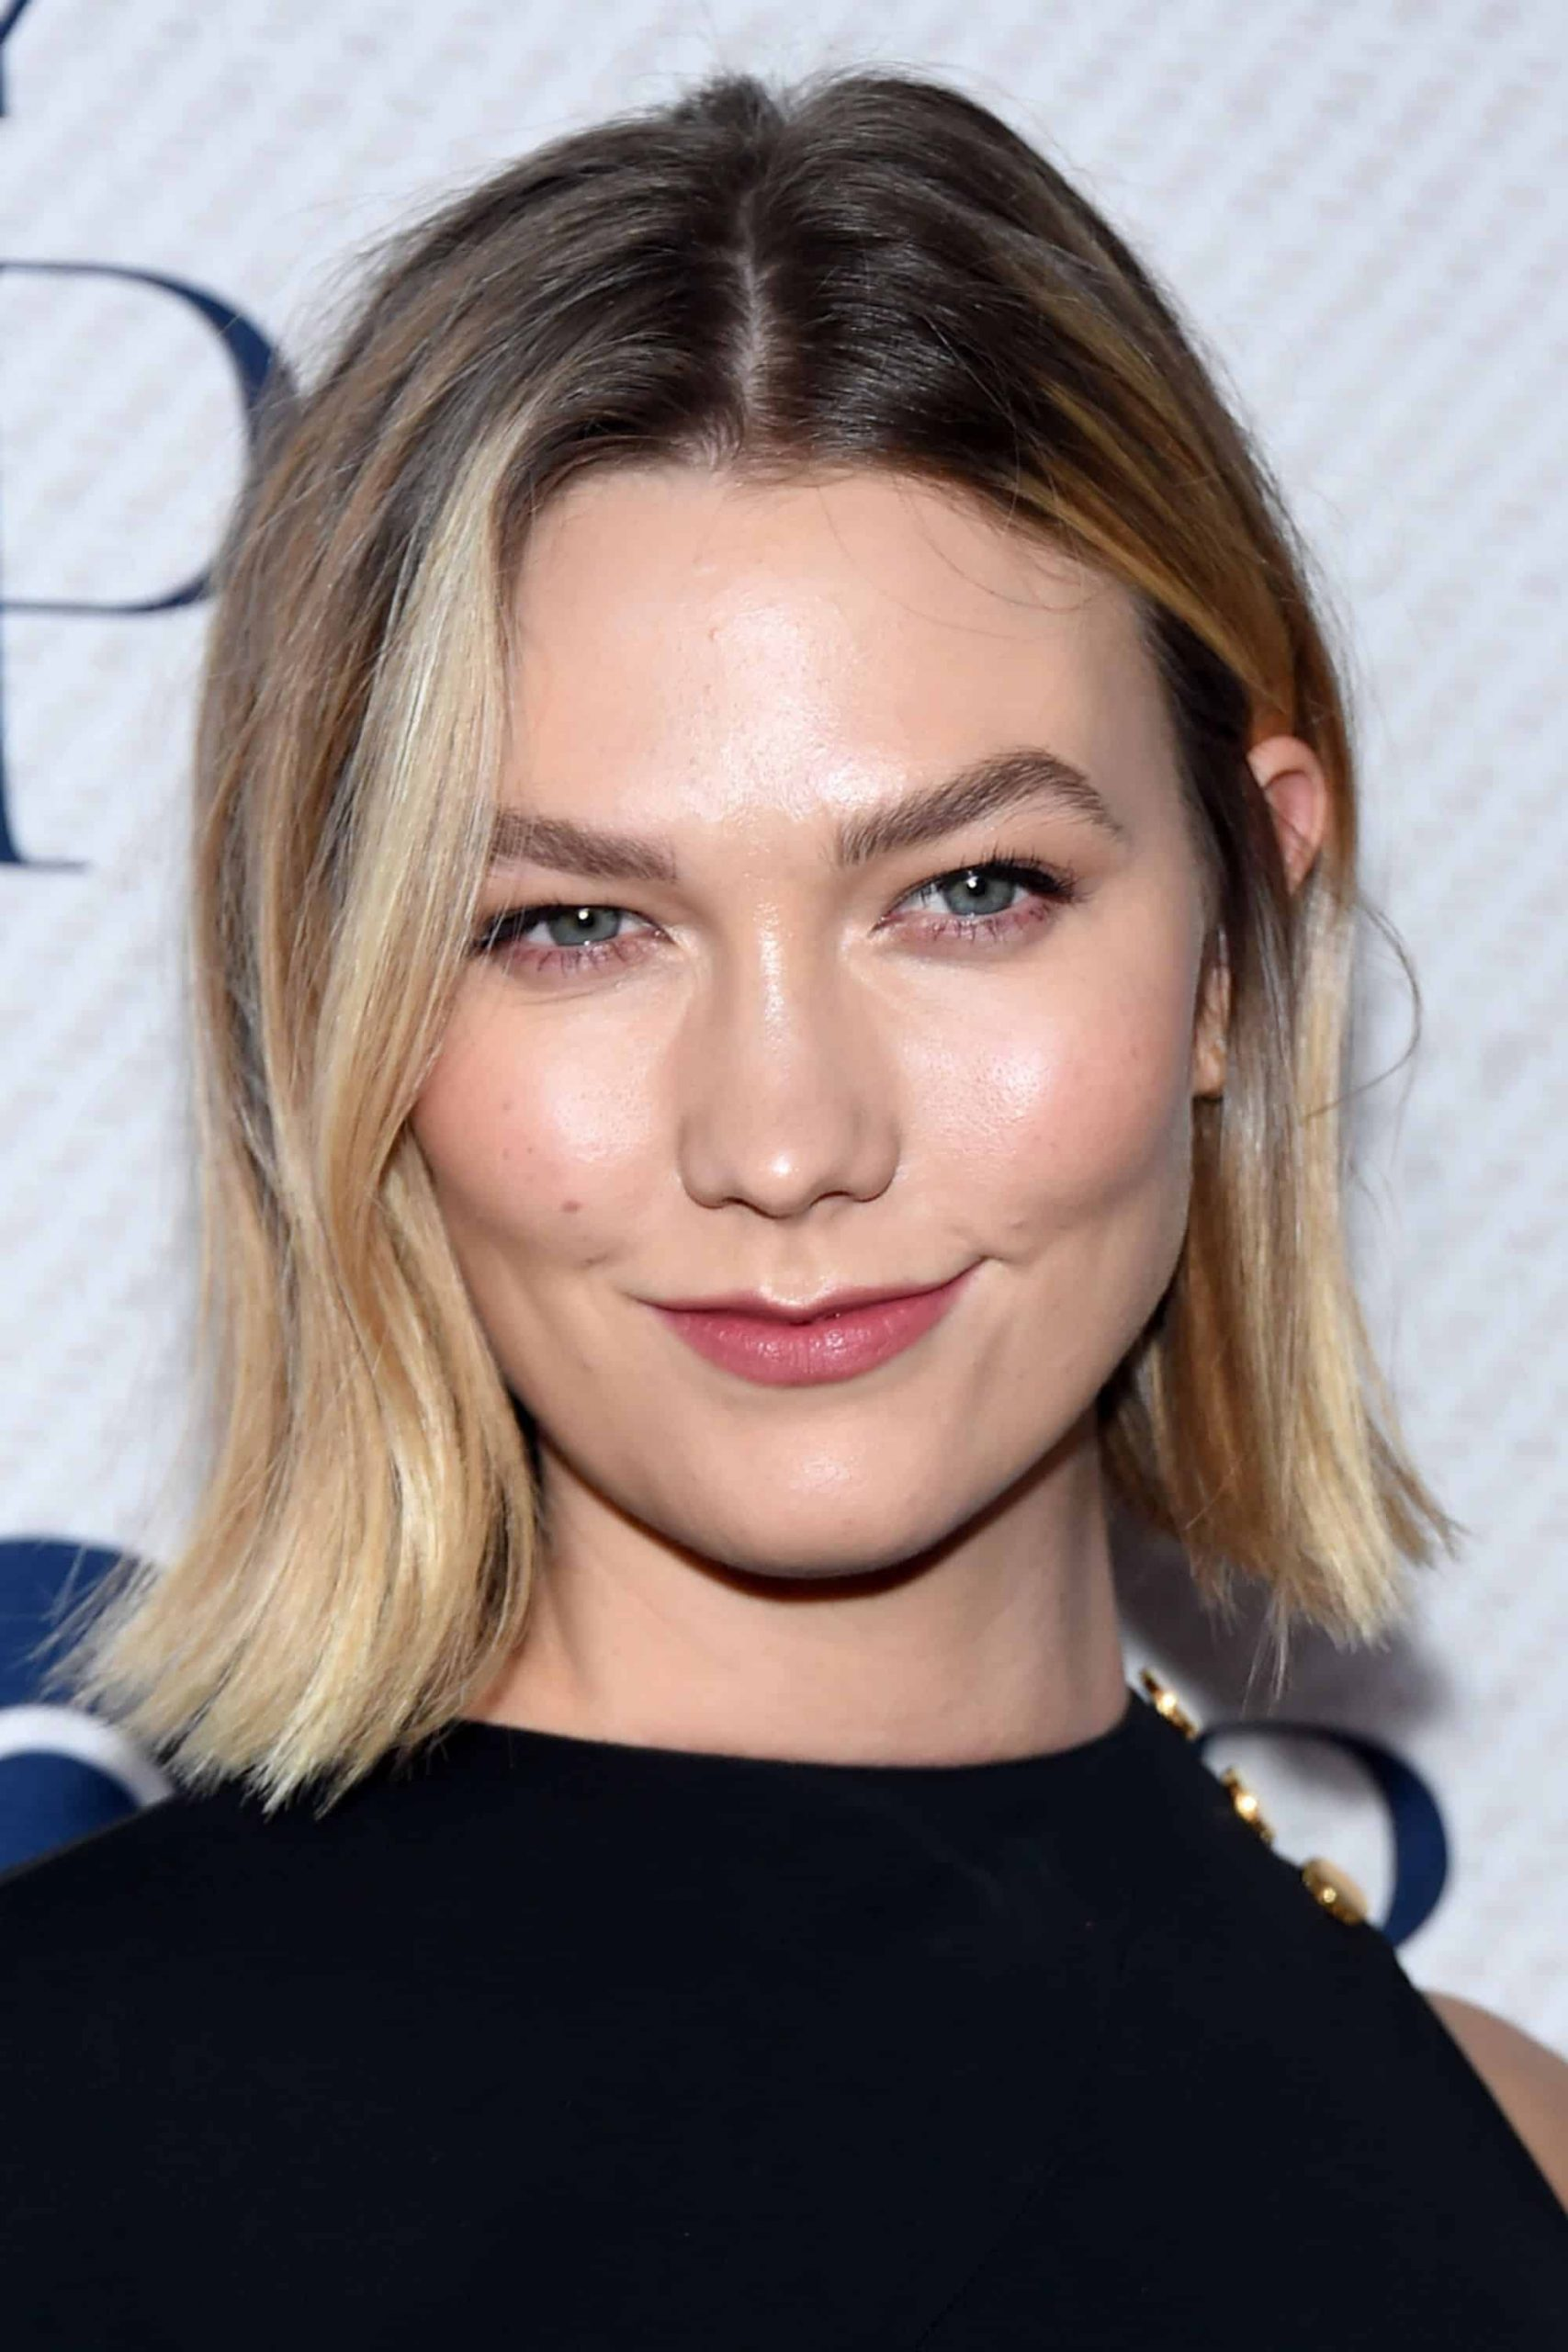 KARLIE KLOSS BLUNT CUT scaled